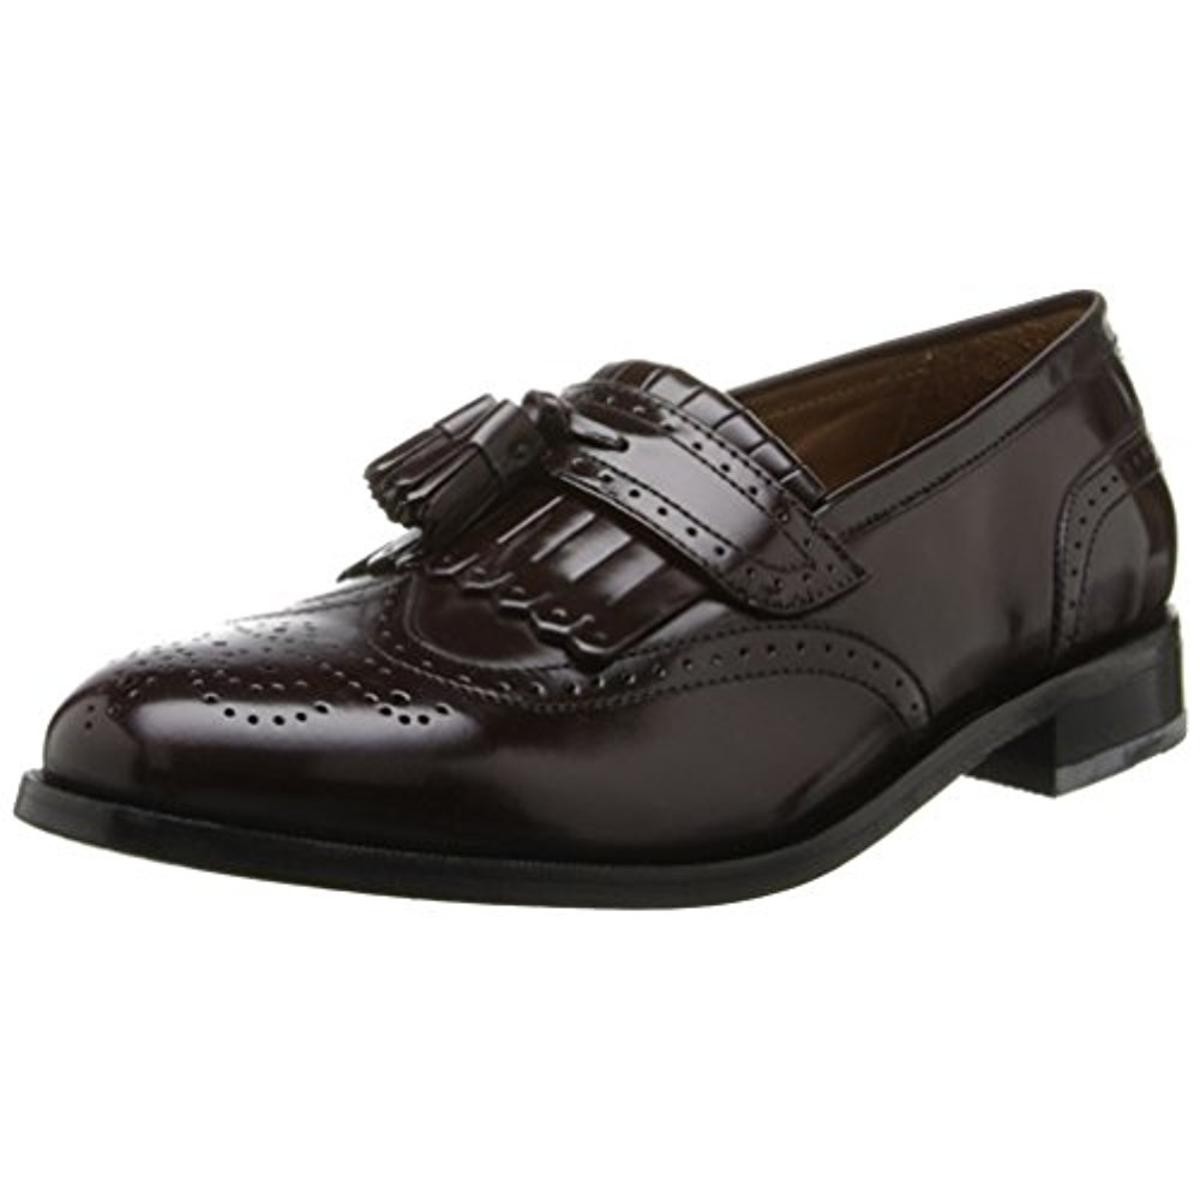 Florsheim Mens Brinson Leather Wing Tip Loafers by Florsheim